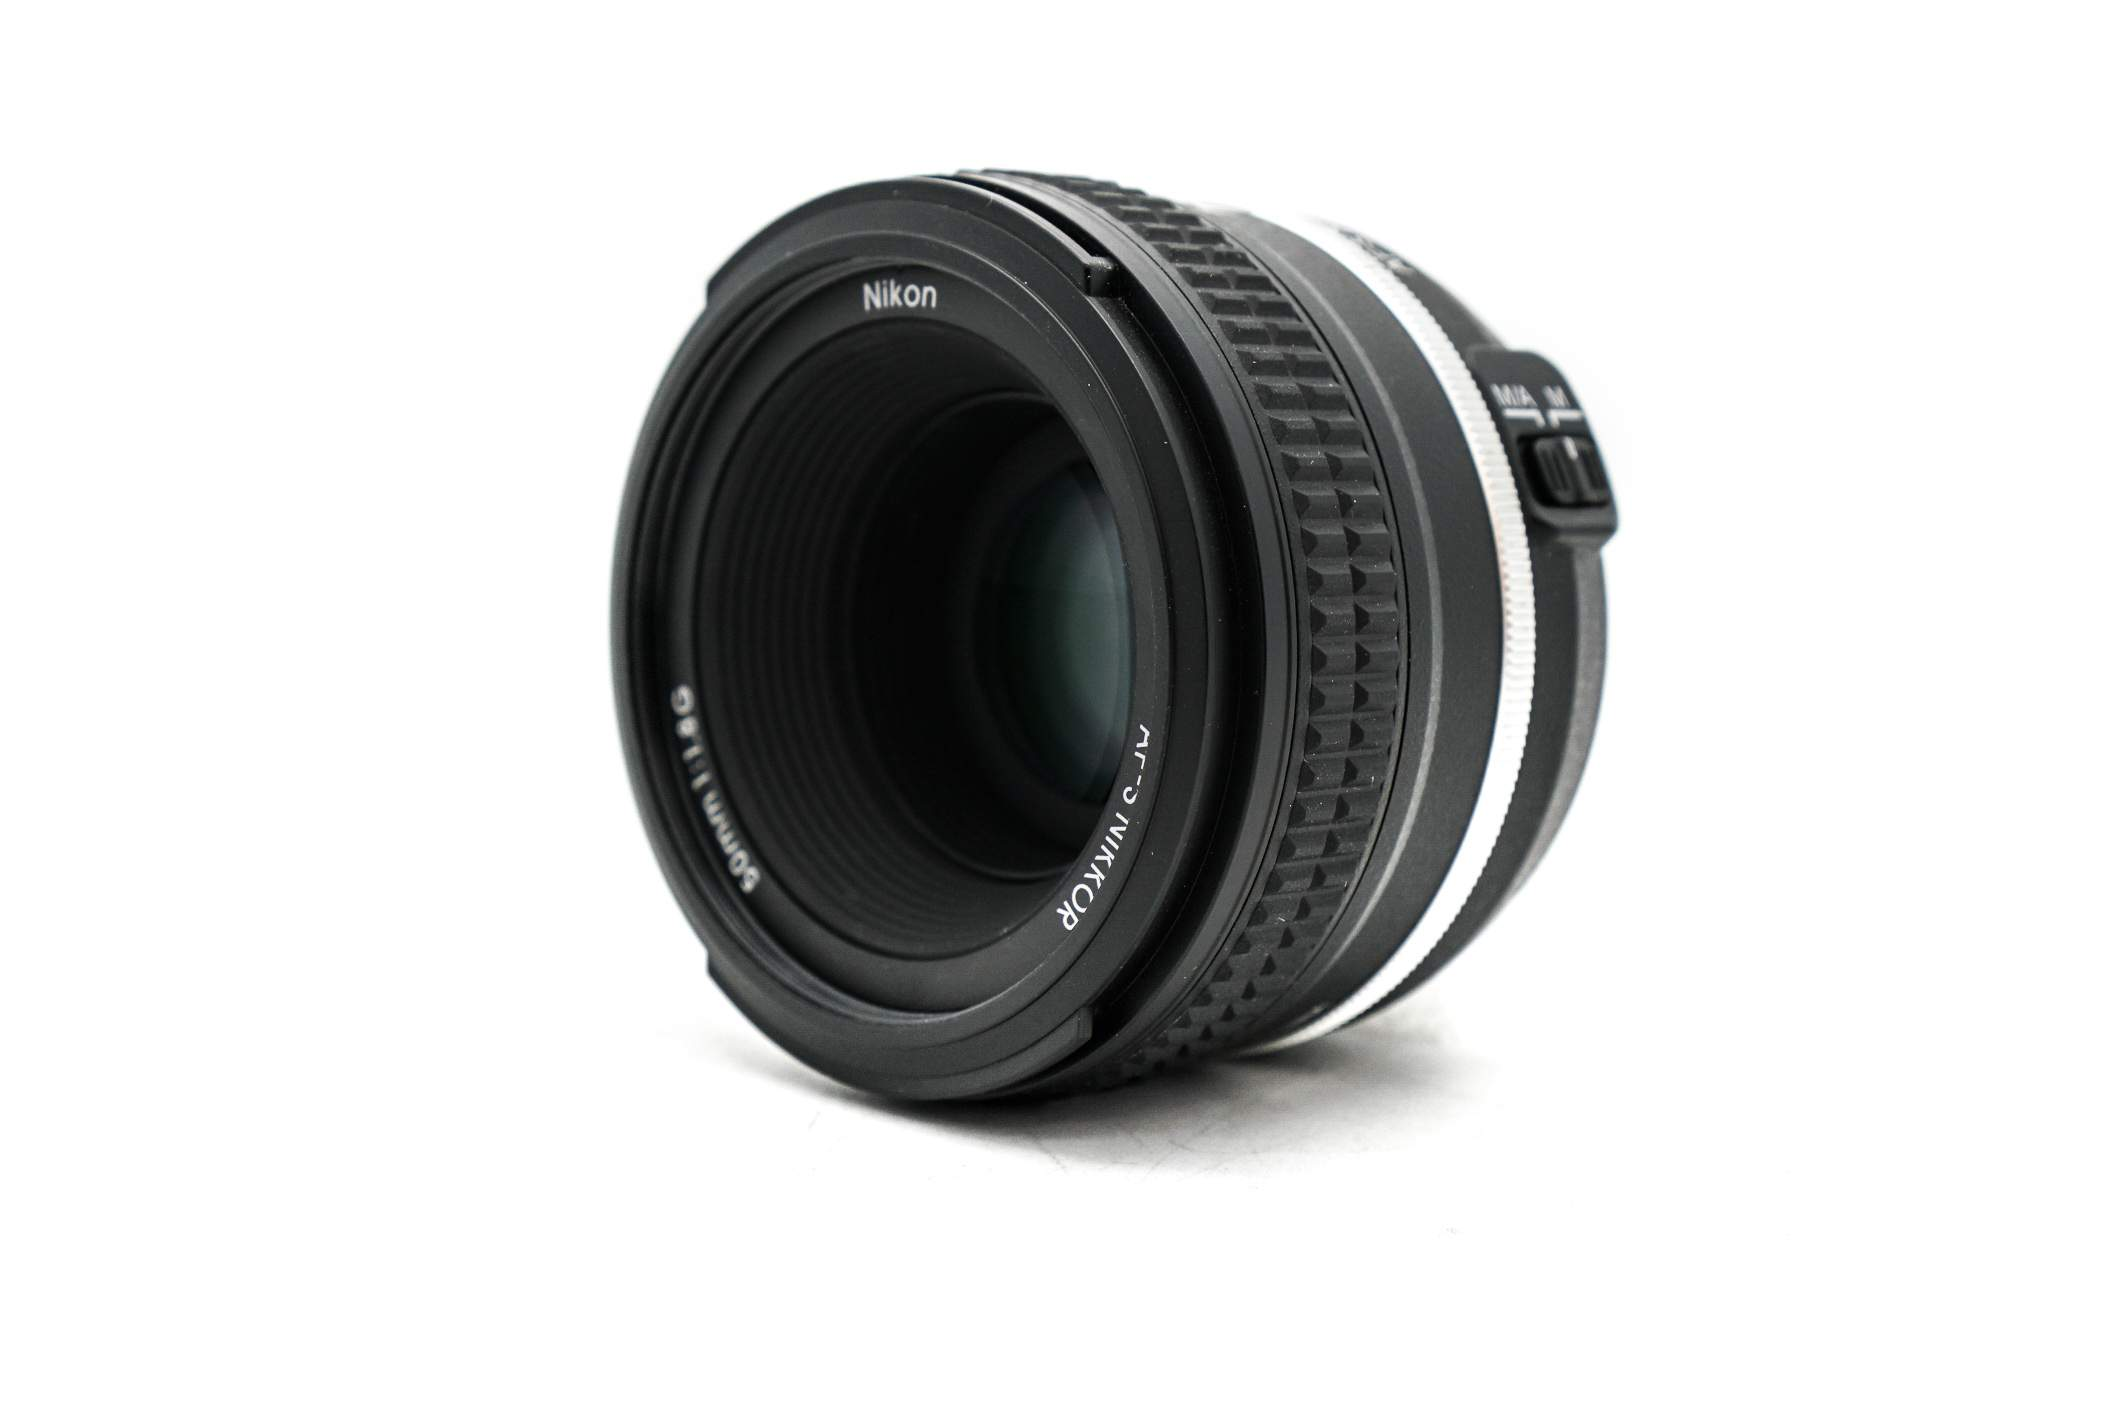 Nikon Af S 50mm F18g F 18g Rent From 11 Month Previous